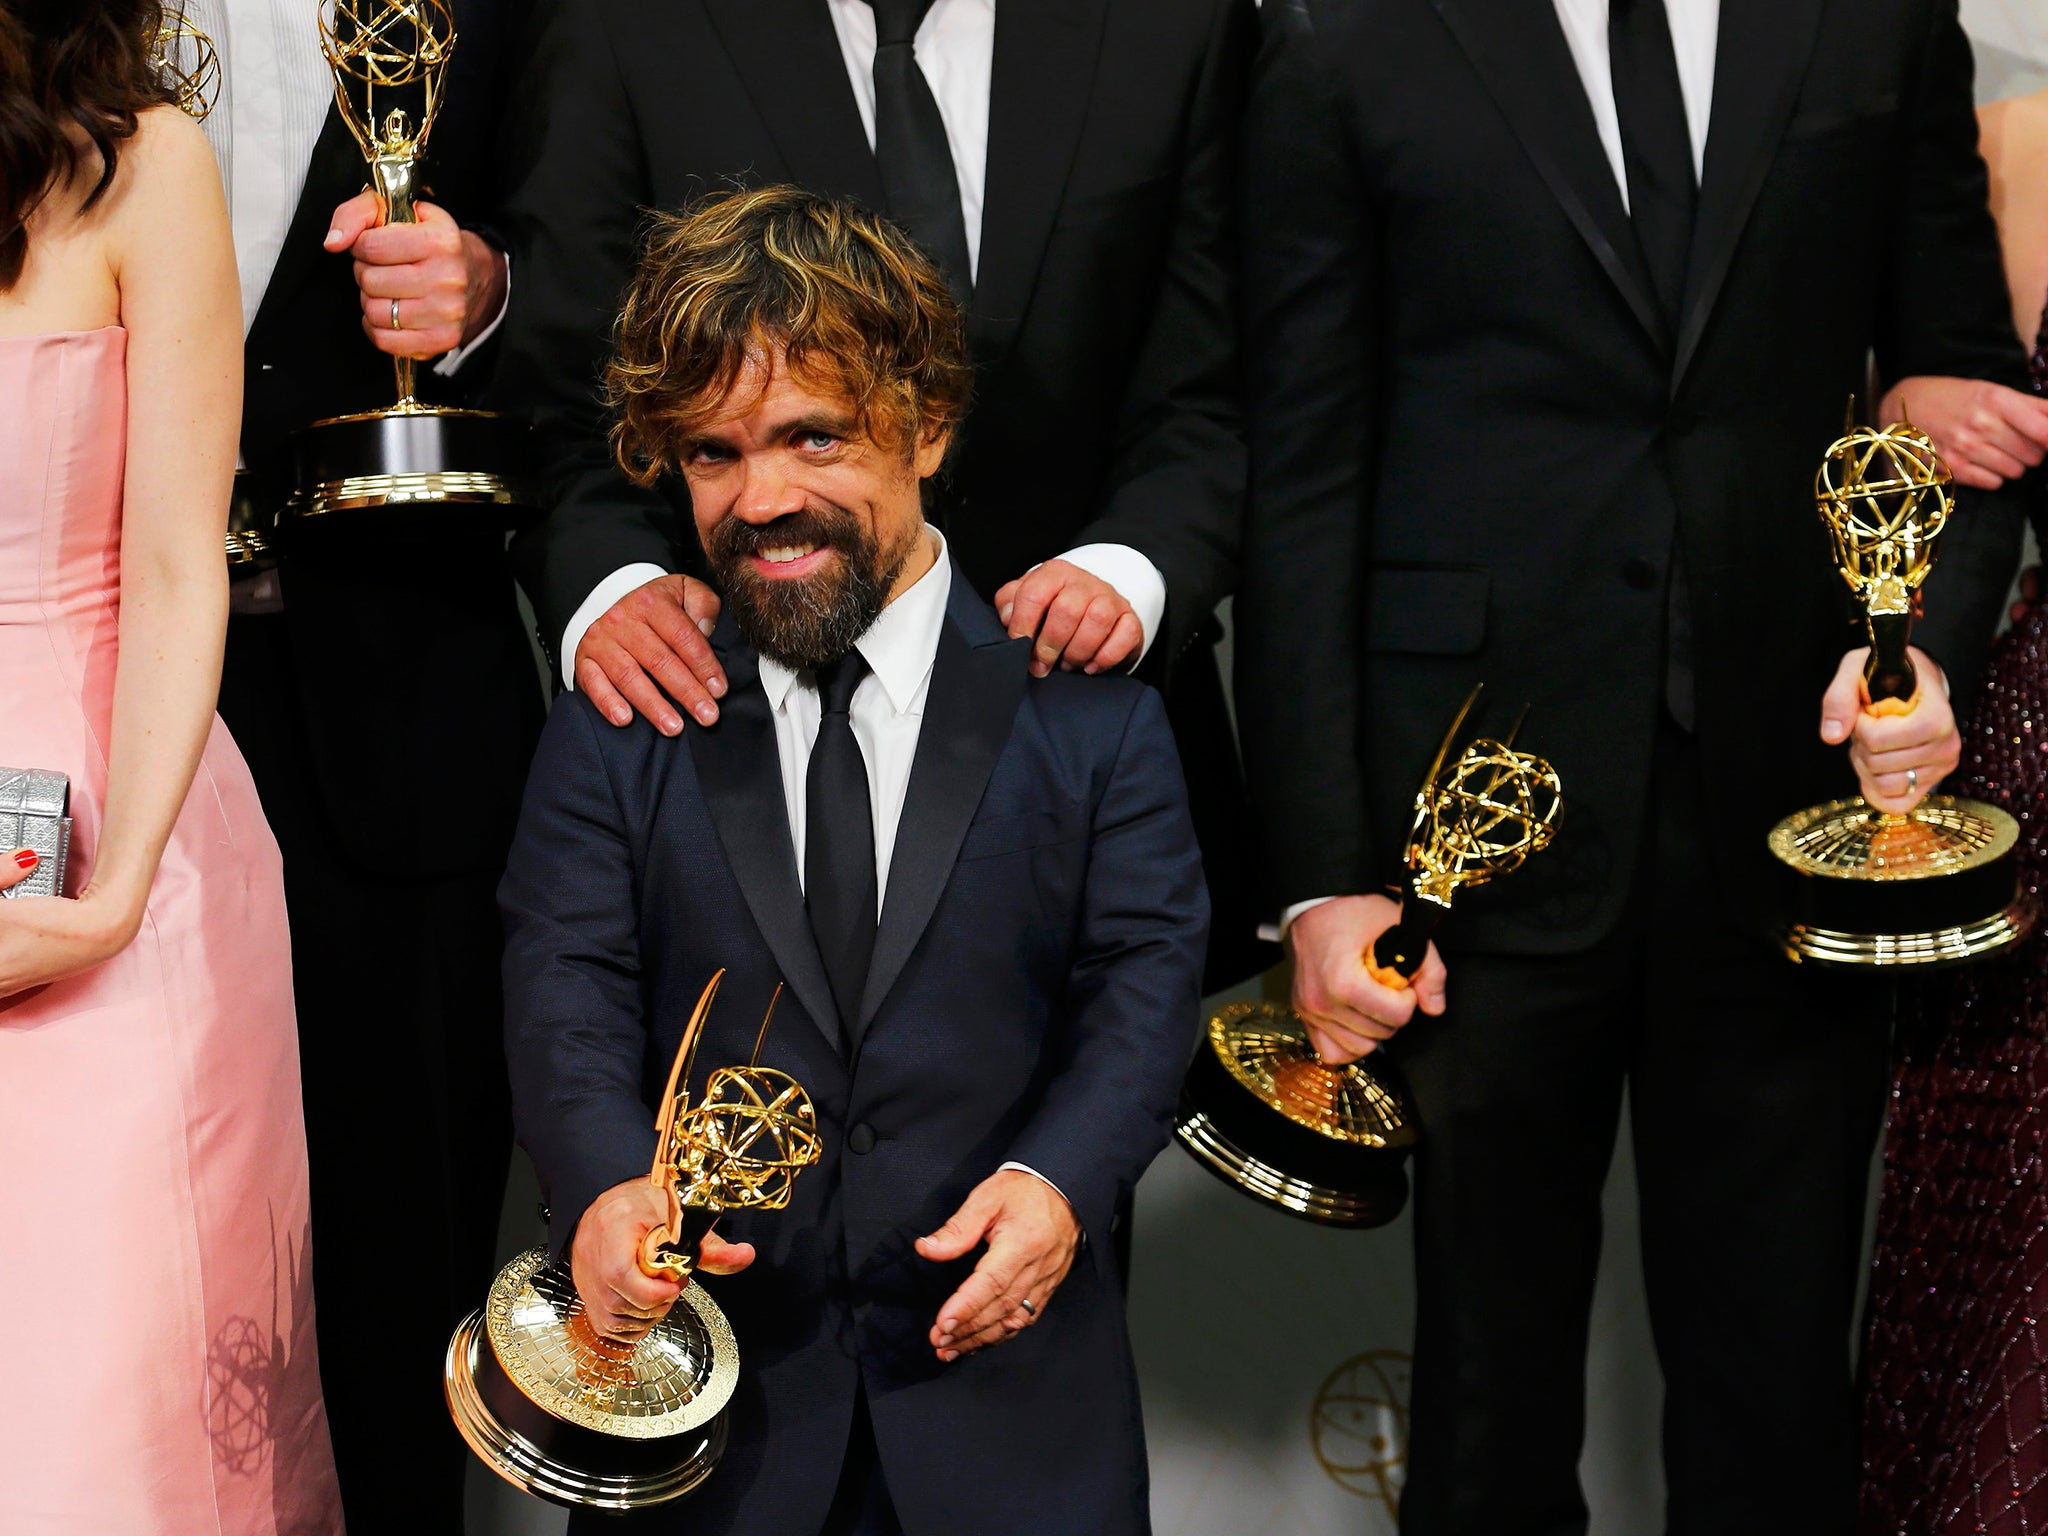 peter dinklage joins cast of in bruges director s new film ^peter dinklage joins cast of in bruges director s new film